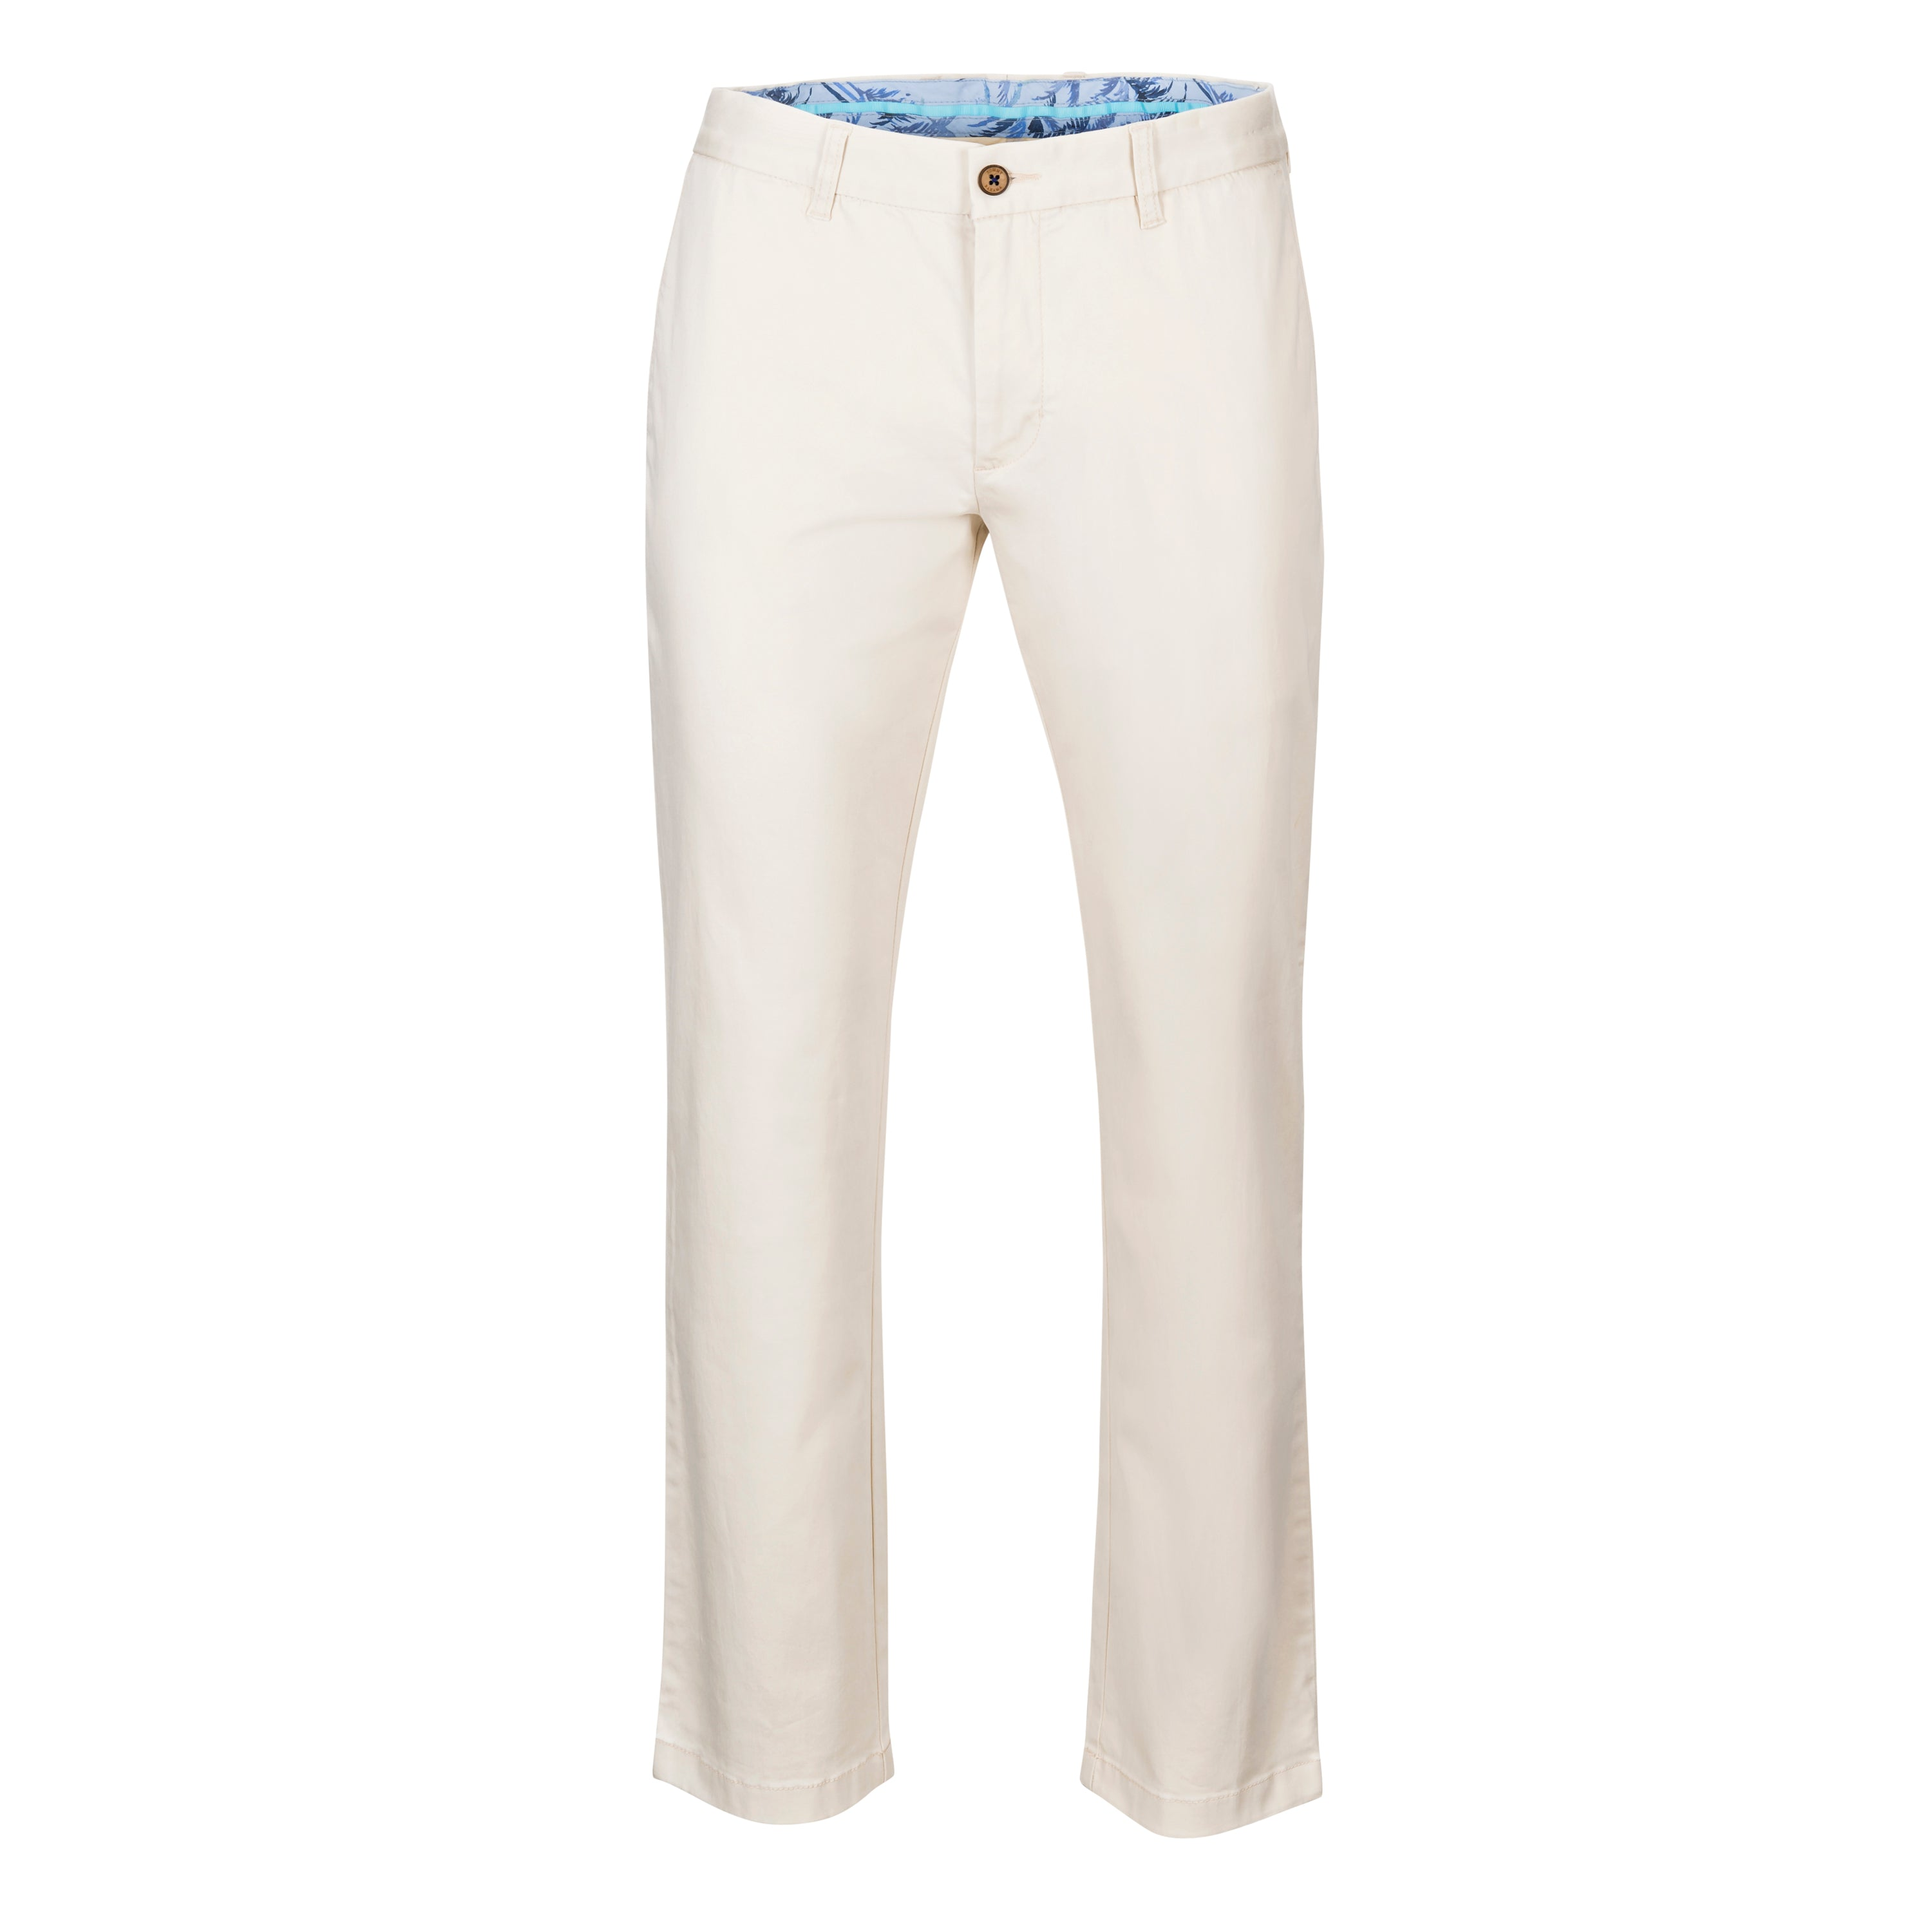 4d02f348 TOMMY BAHAMA BORACAY FLAT FRONT CHINO (more colors) – Miltons - The ...